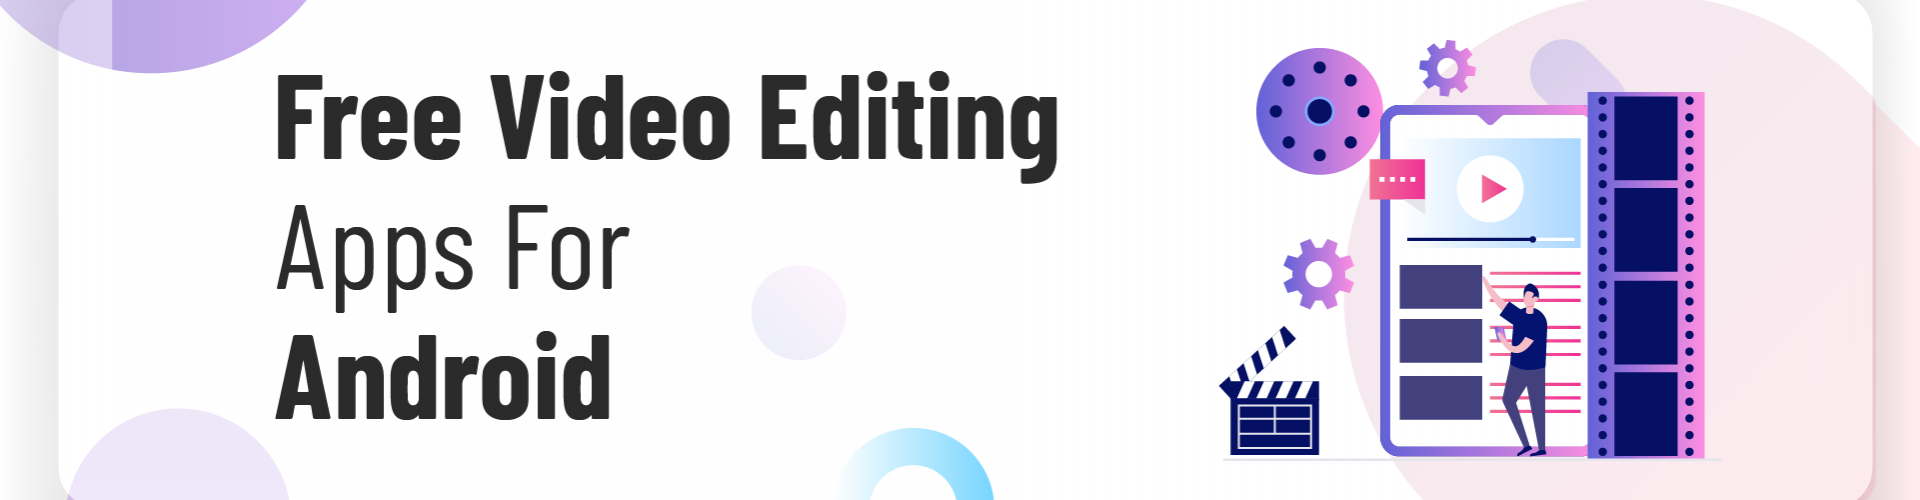 Take a Look At The 10 Best Free Video Editing Apps For Android